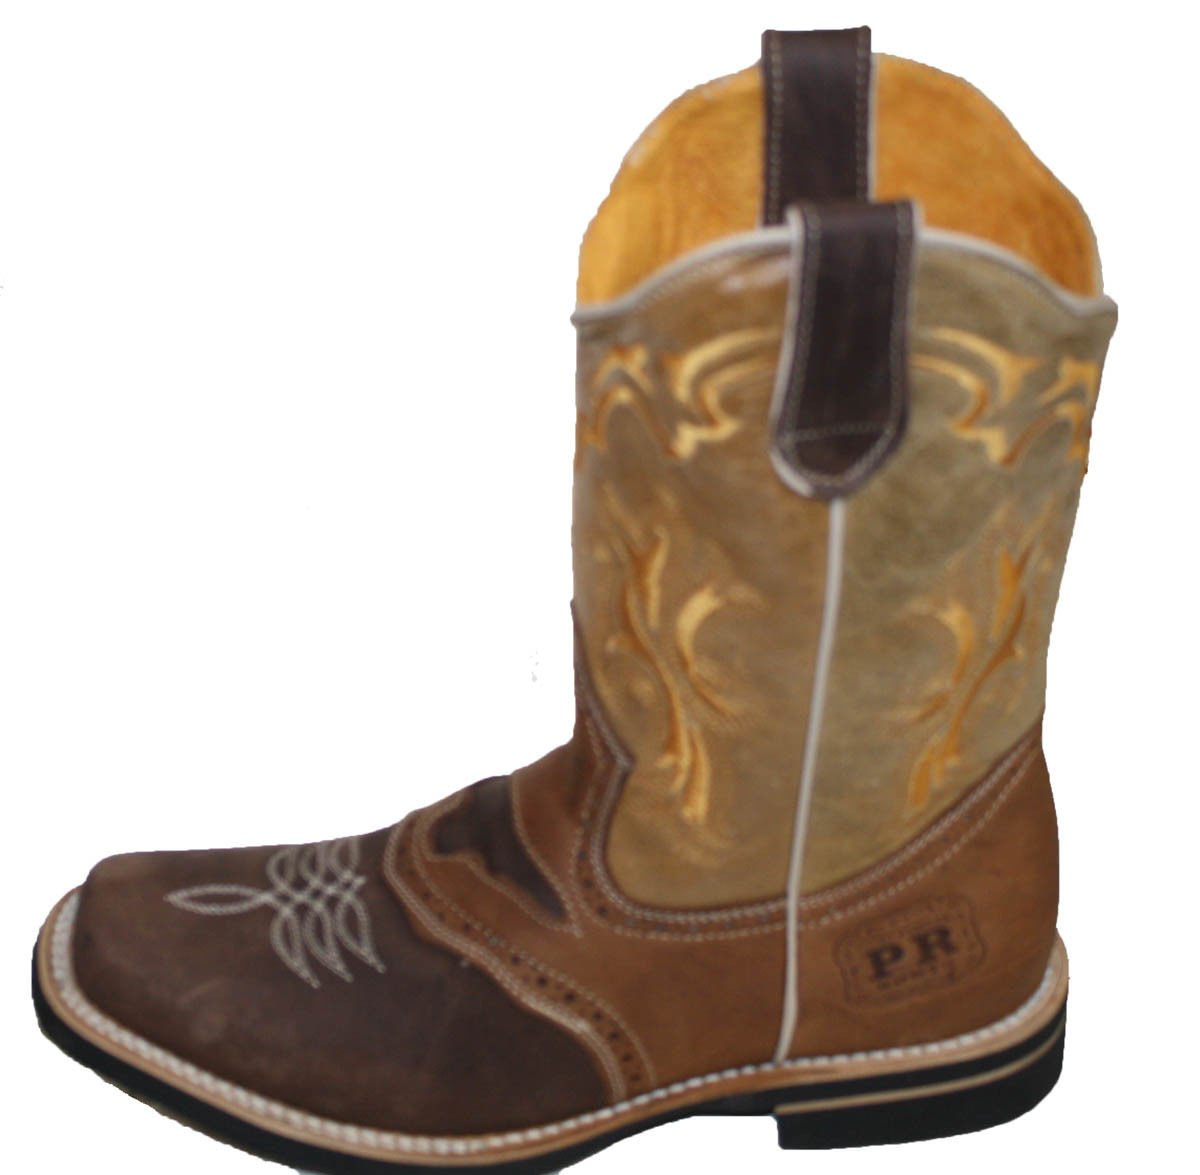 Men Cowboy Genuine Cowhide Leather Square Toe Rodeo Western Boots_Brown_Tan_9 by Dona Michi